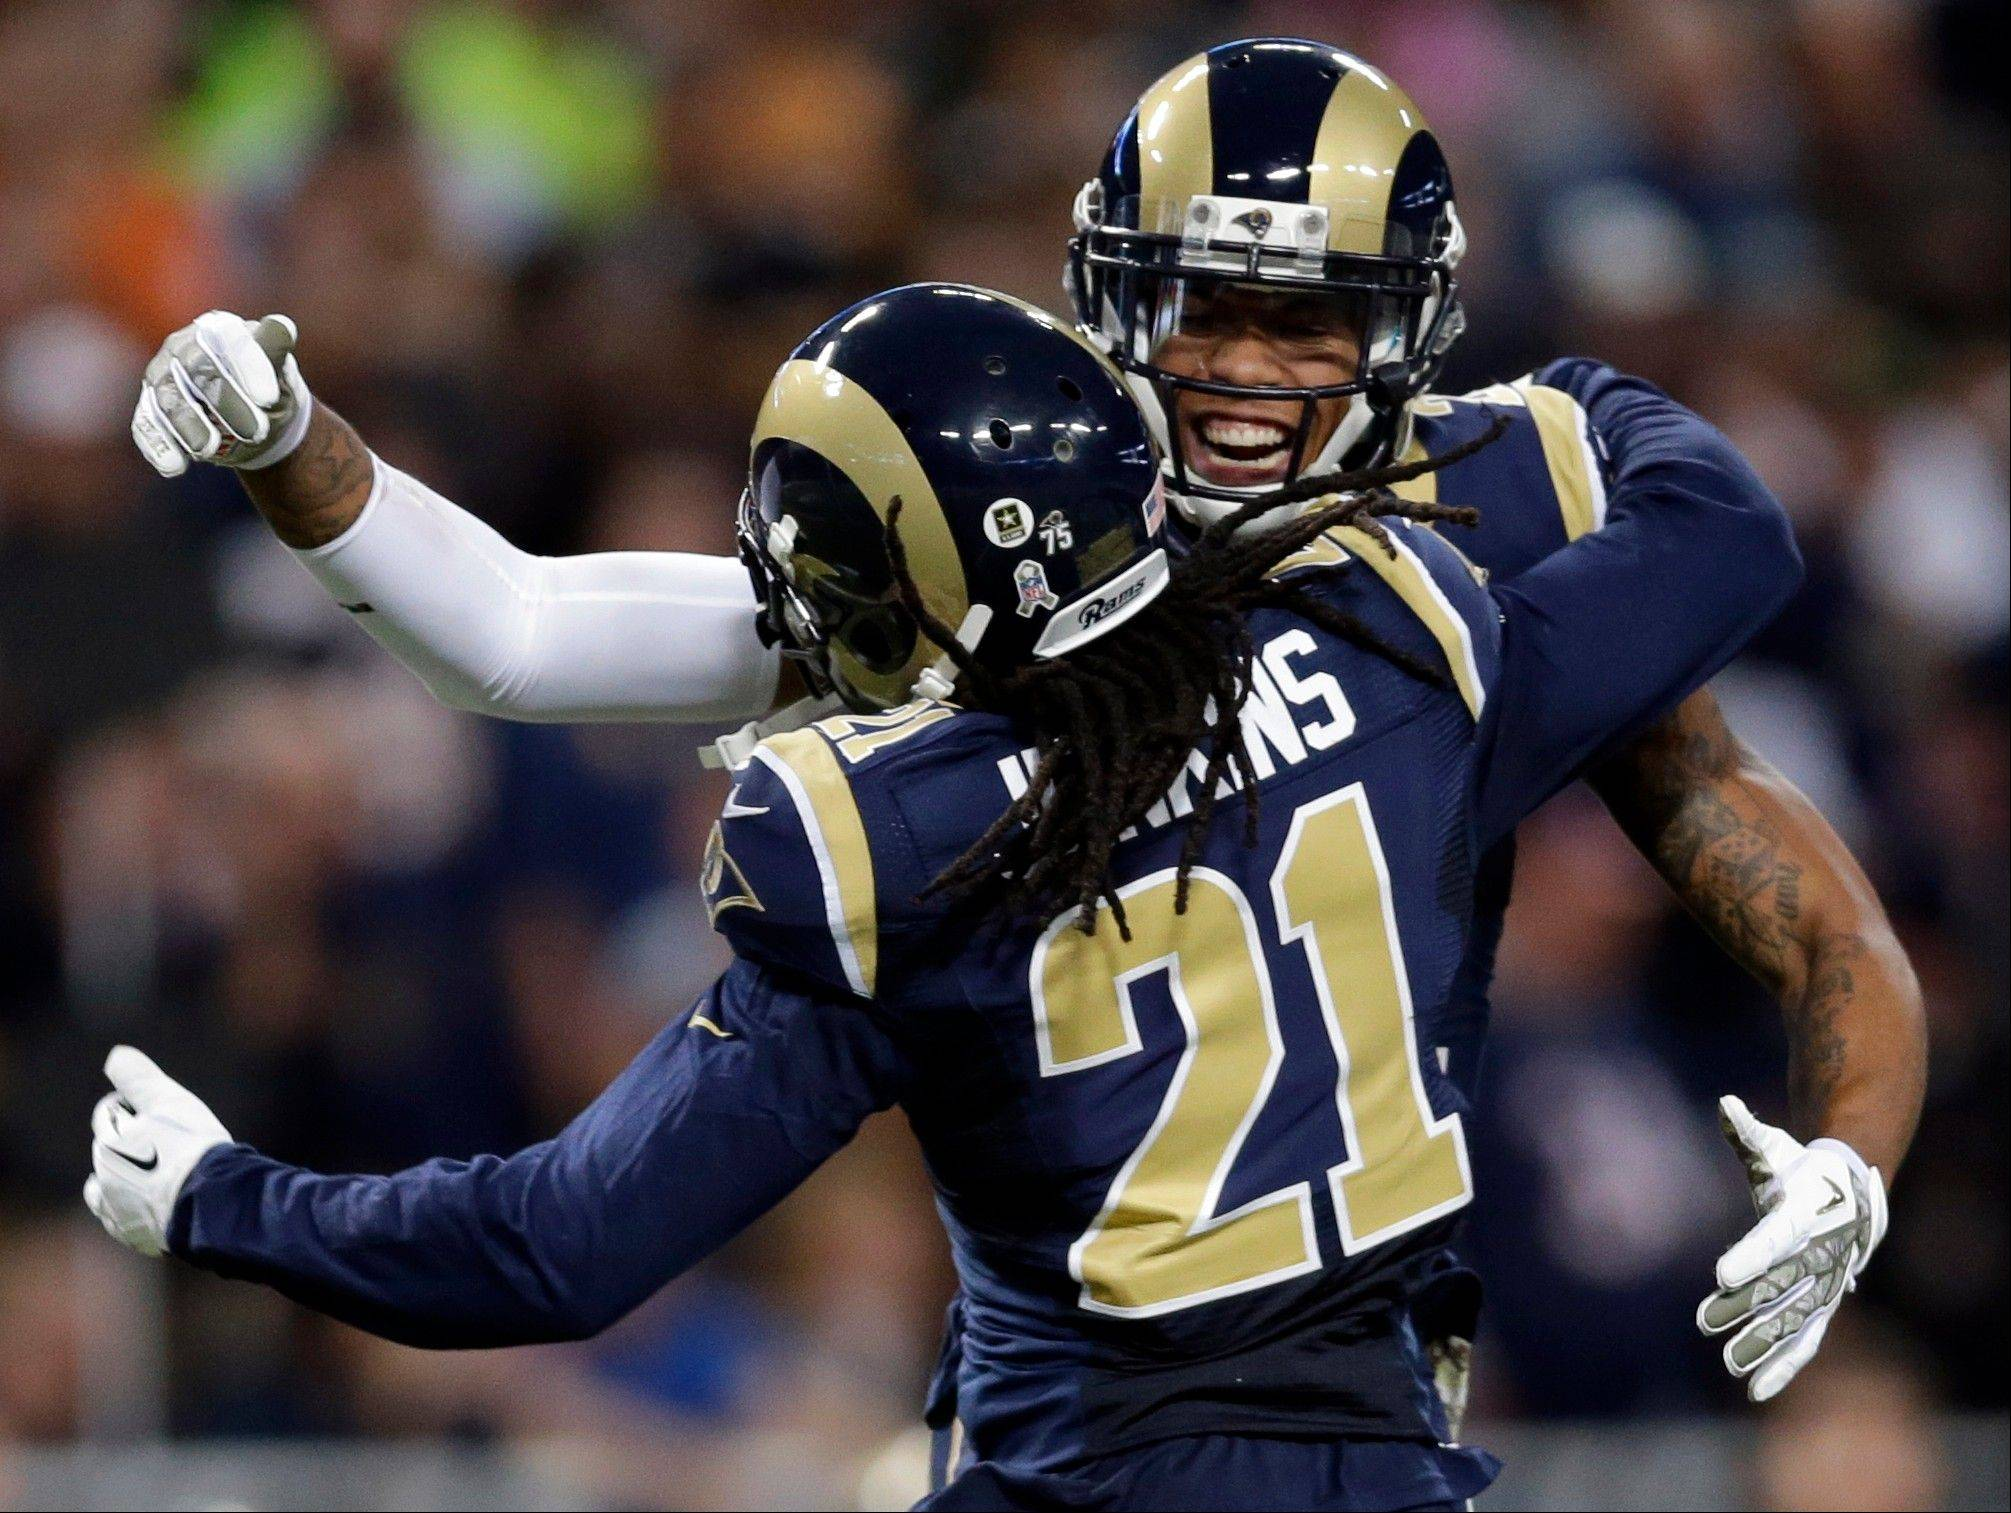 St. Louis Rams cornerback Janoris Jenkins (21) is congratulated by teammate Trumaine Johnson after intercepting a pass during the second quarter.